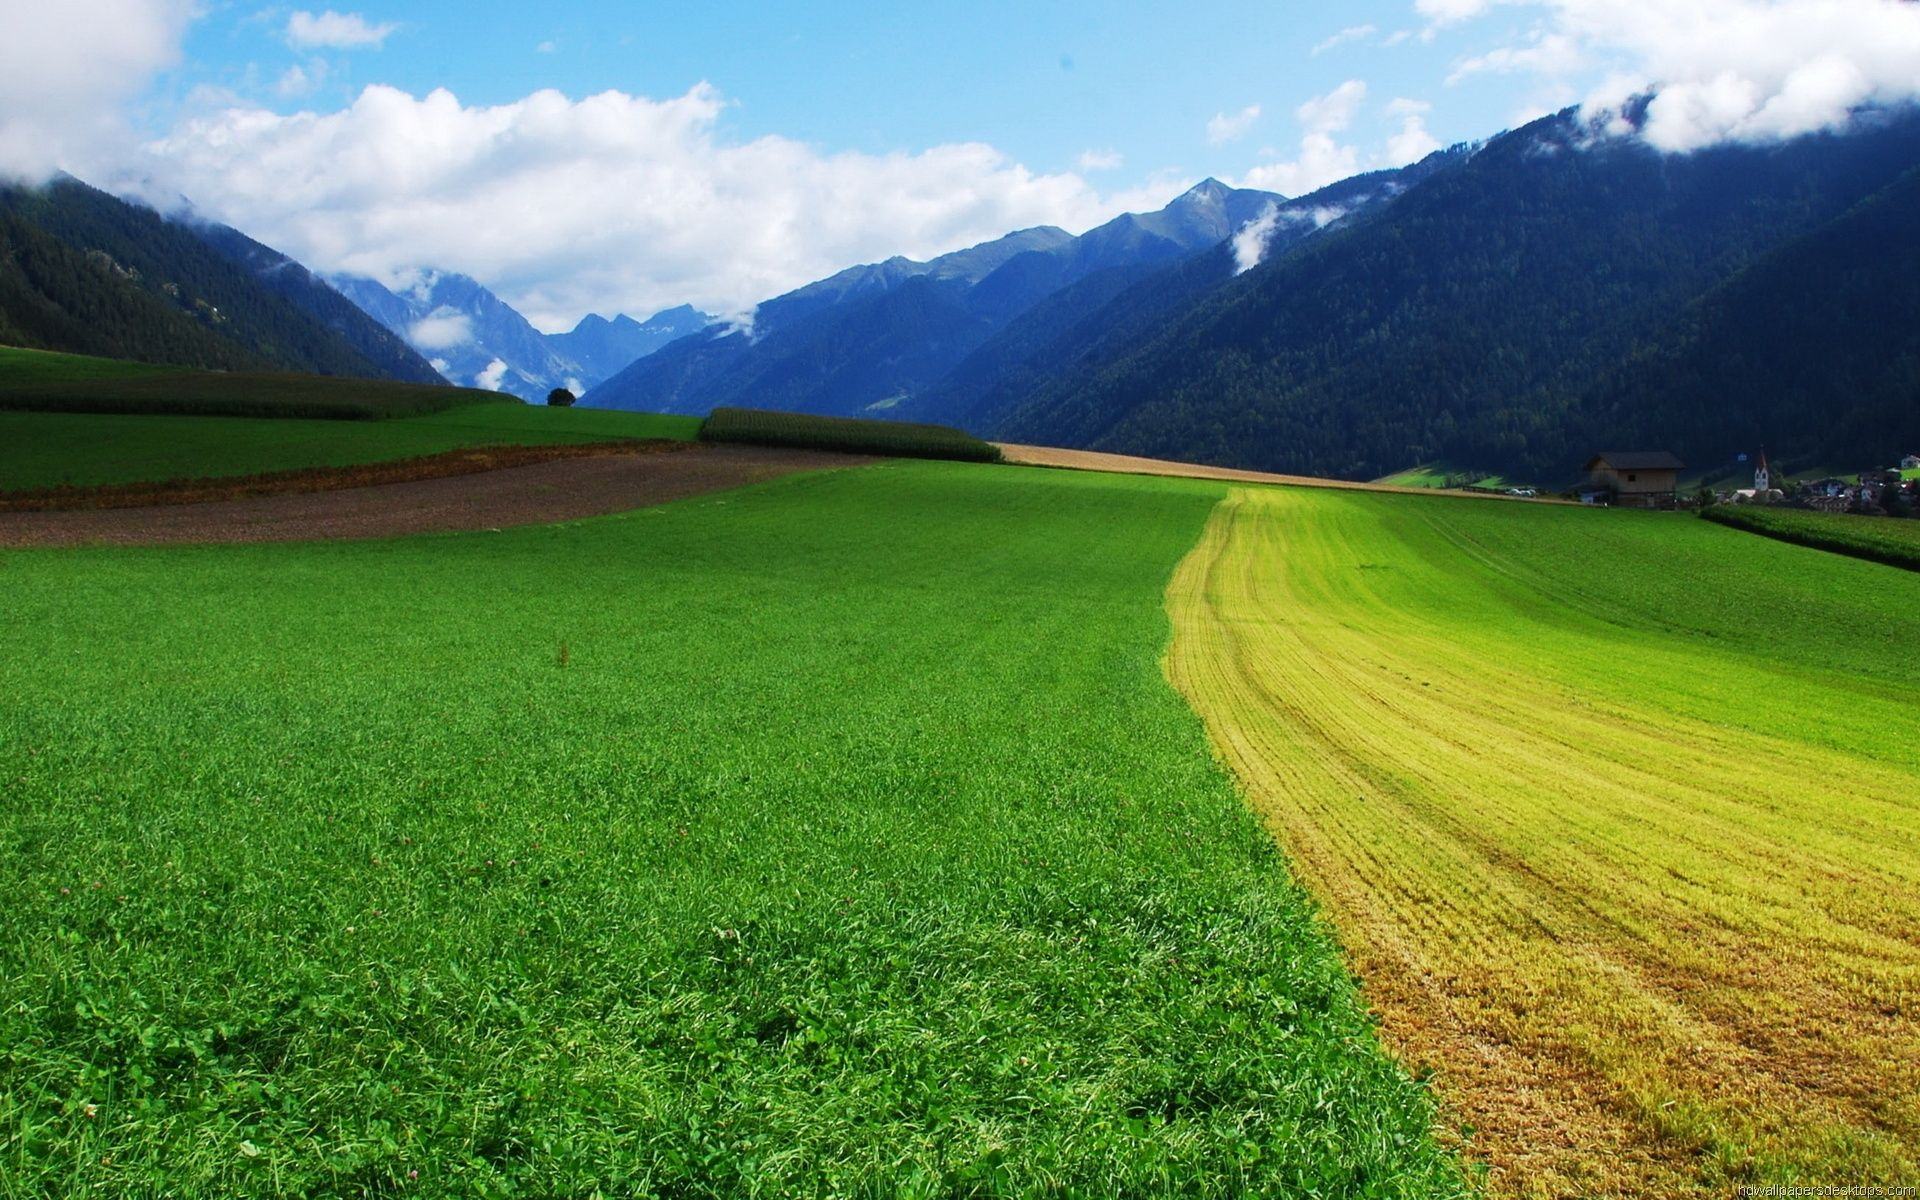 summer natural landscape with green grass and mountains